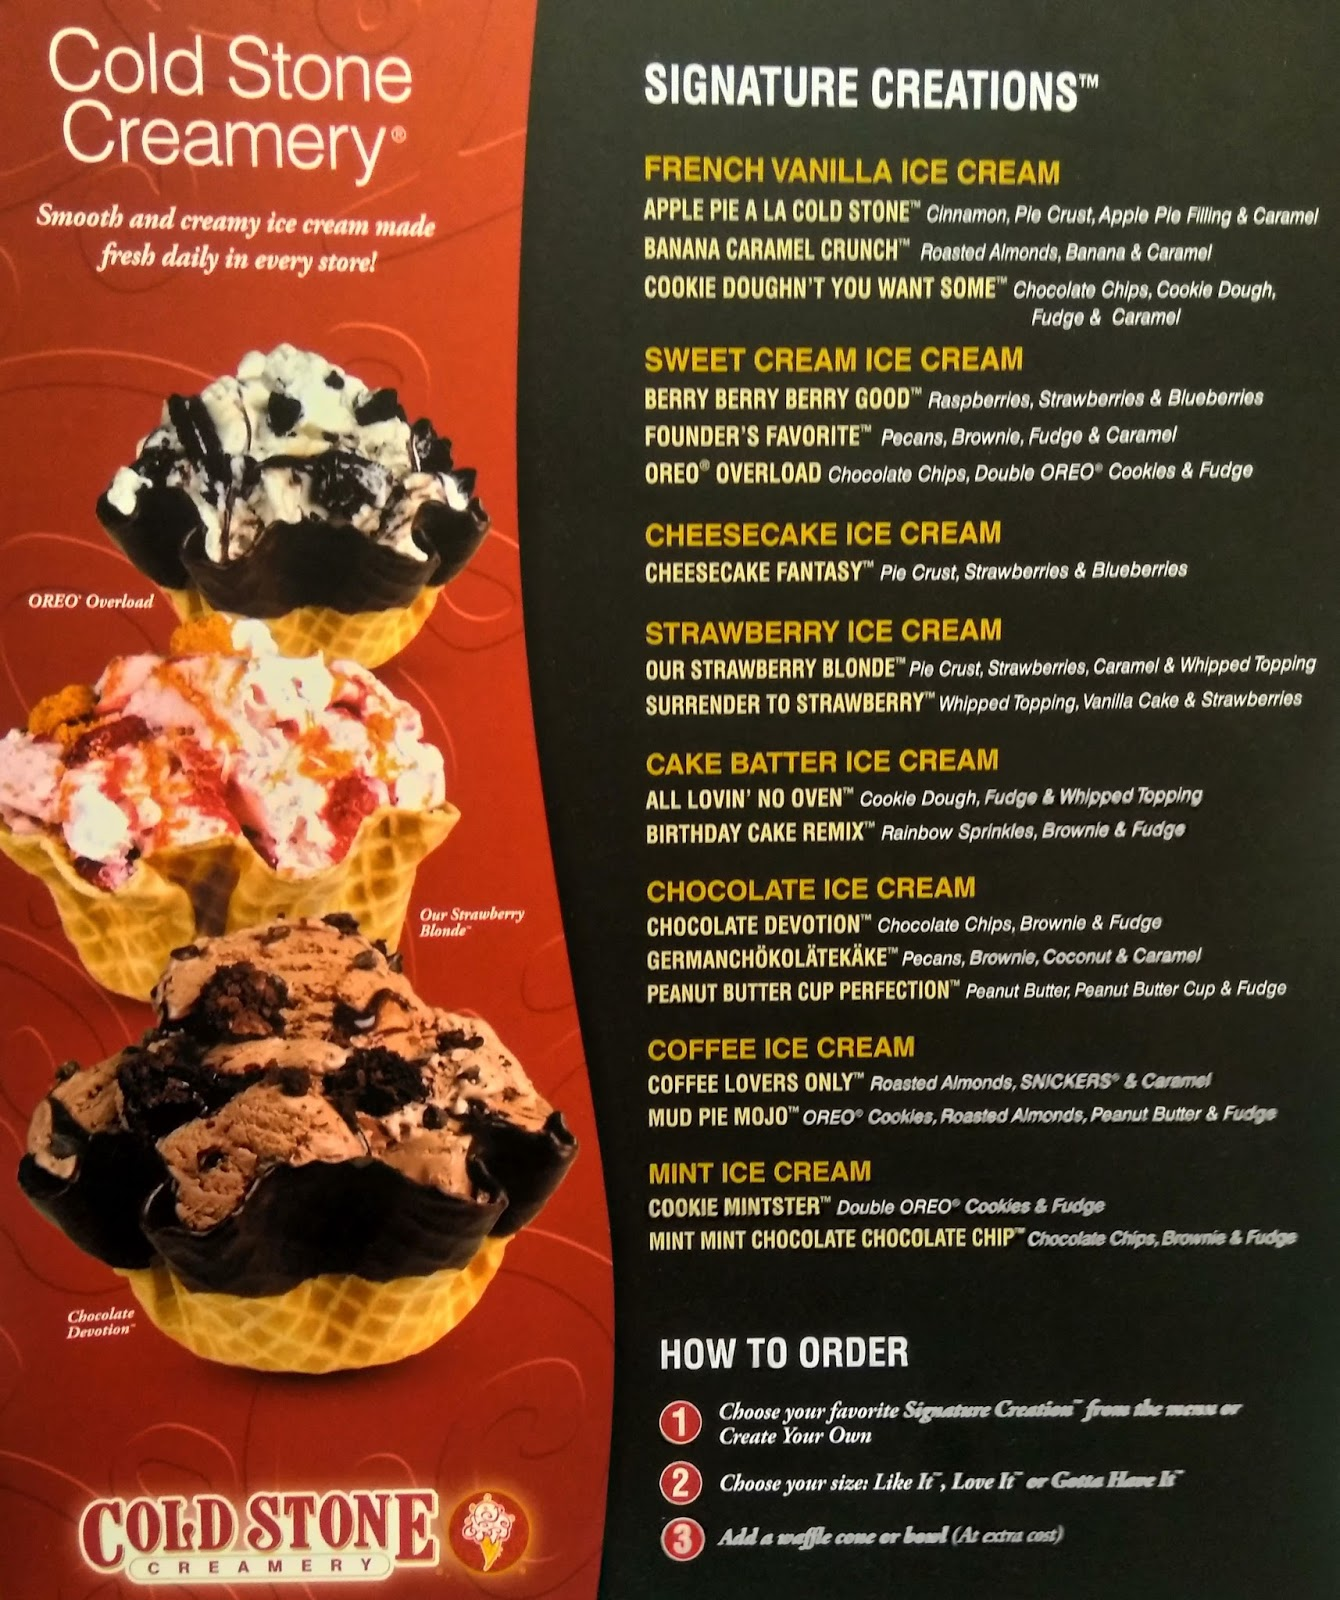 Cold stone creamery redefining an icecream experience marketing signature creations coldstone creamery india ccuart